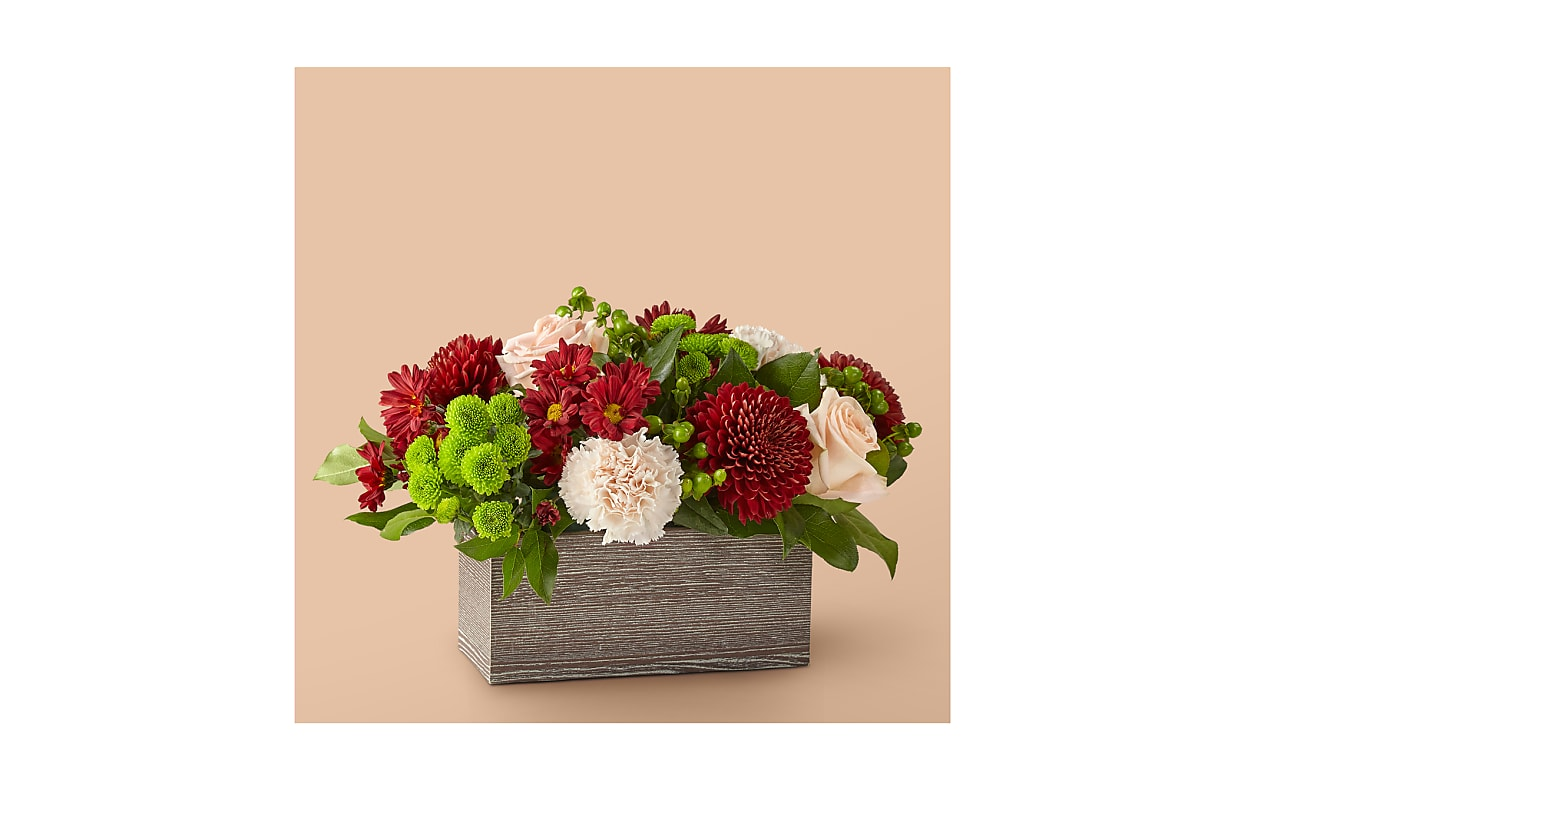 Spiced Wine Bouquet - Image 1 Of 3